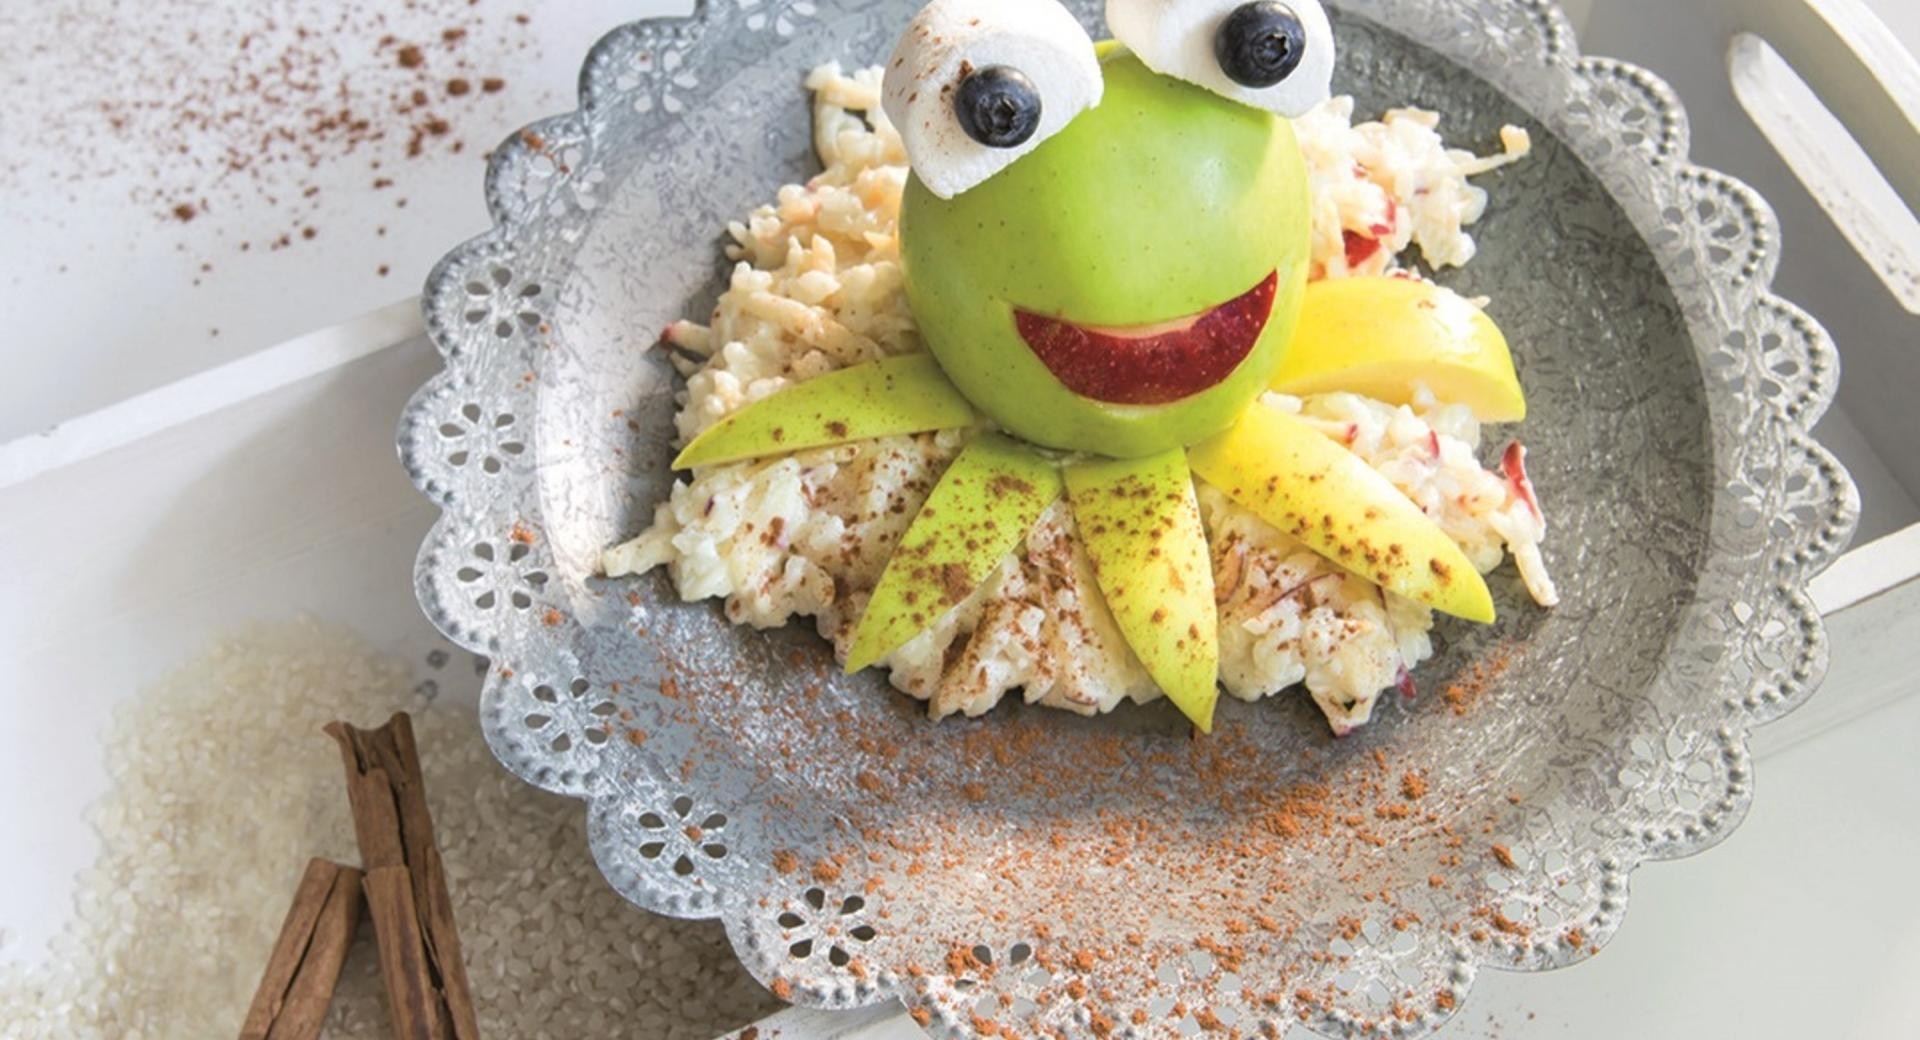 Rice pudding with apples